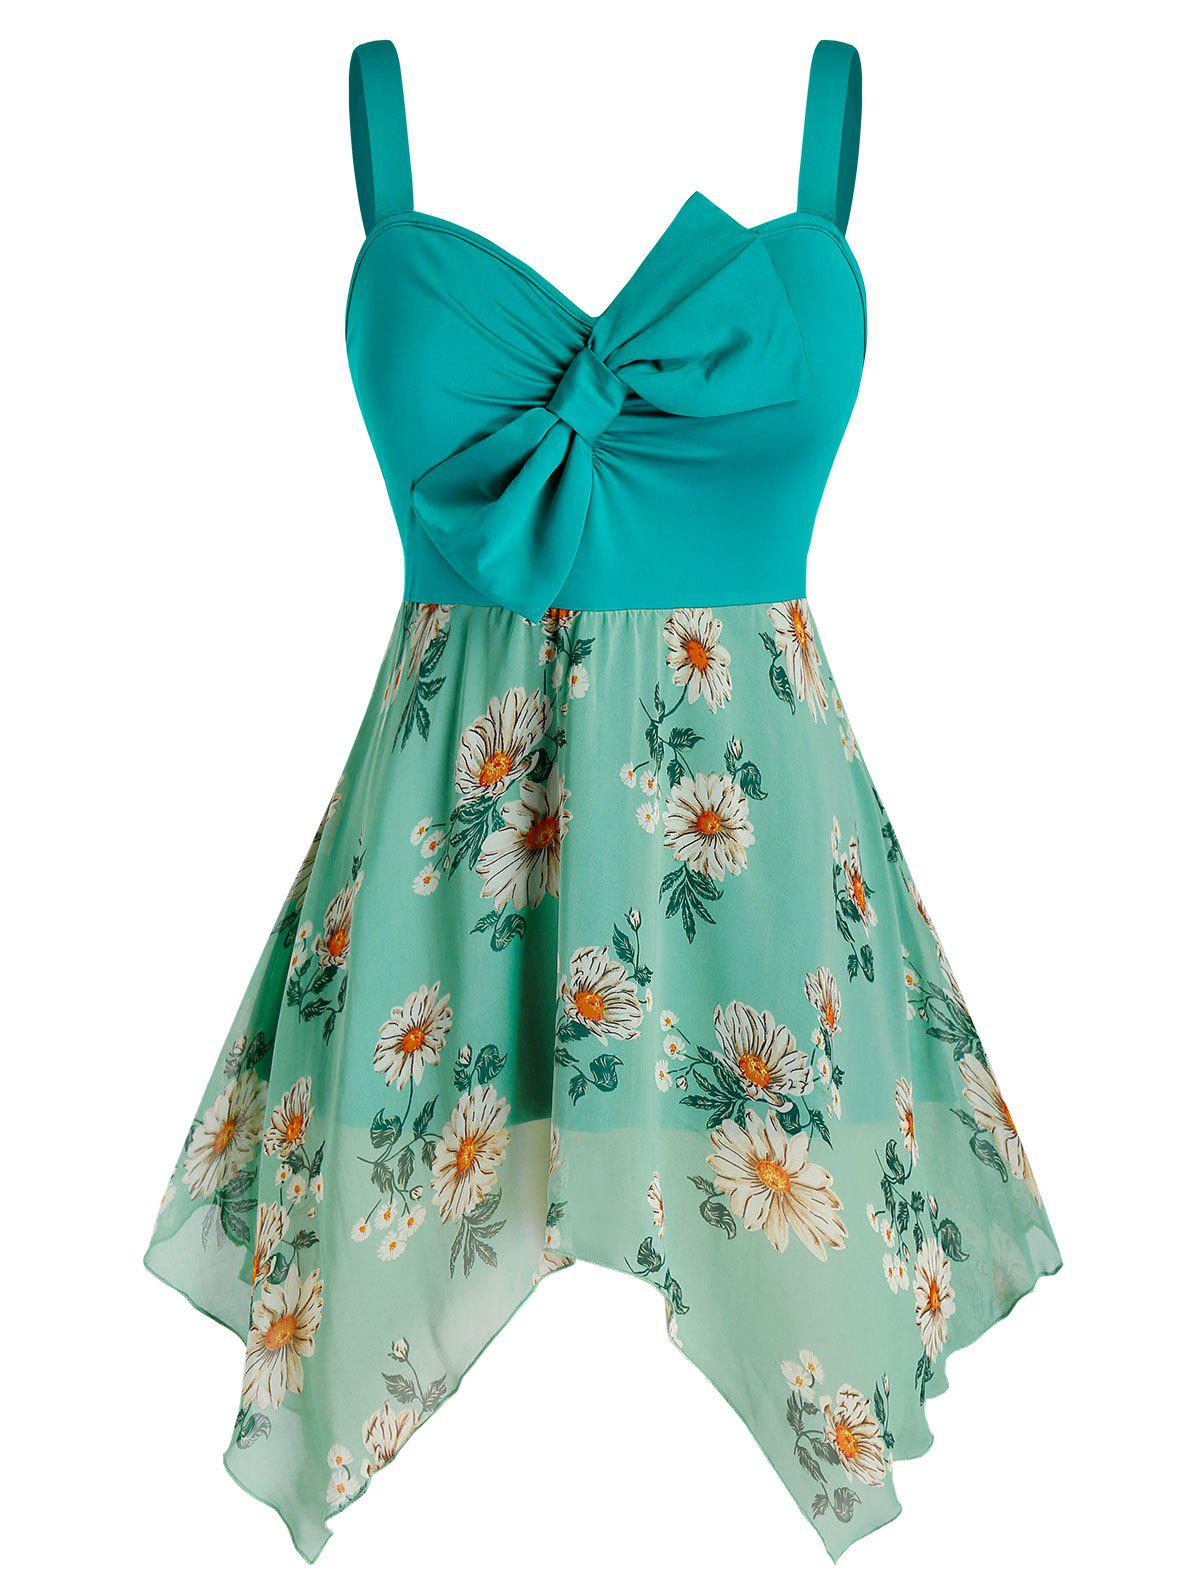 Fashion Plus Size Bowknot Flower Print Handkerchief Backless Tank Top